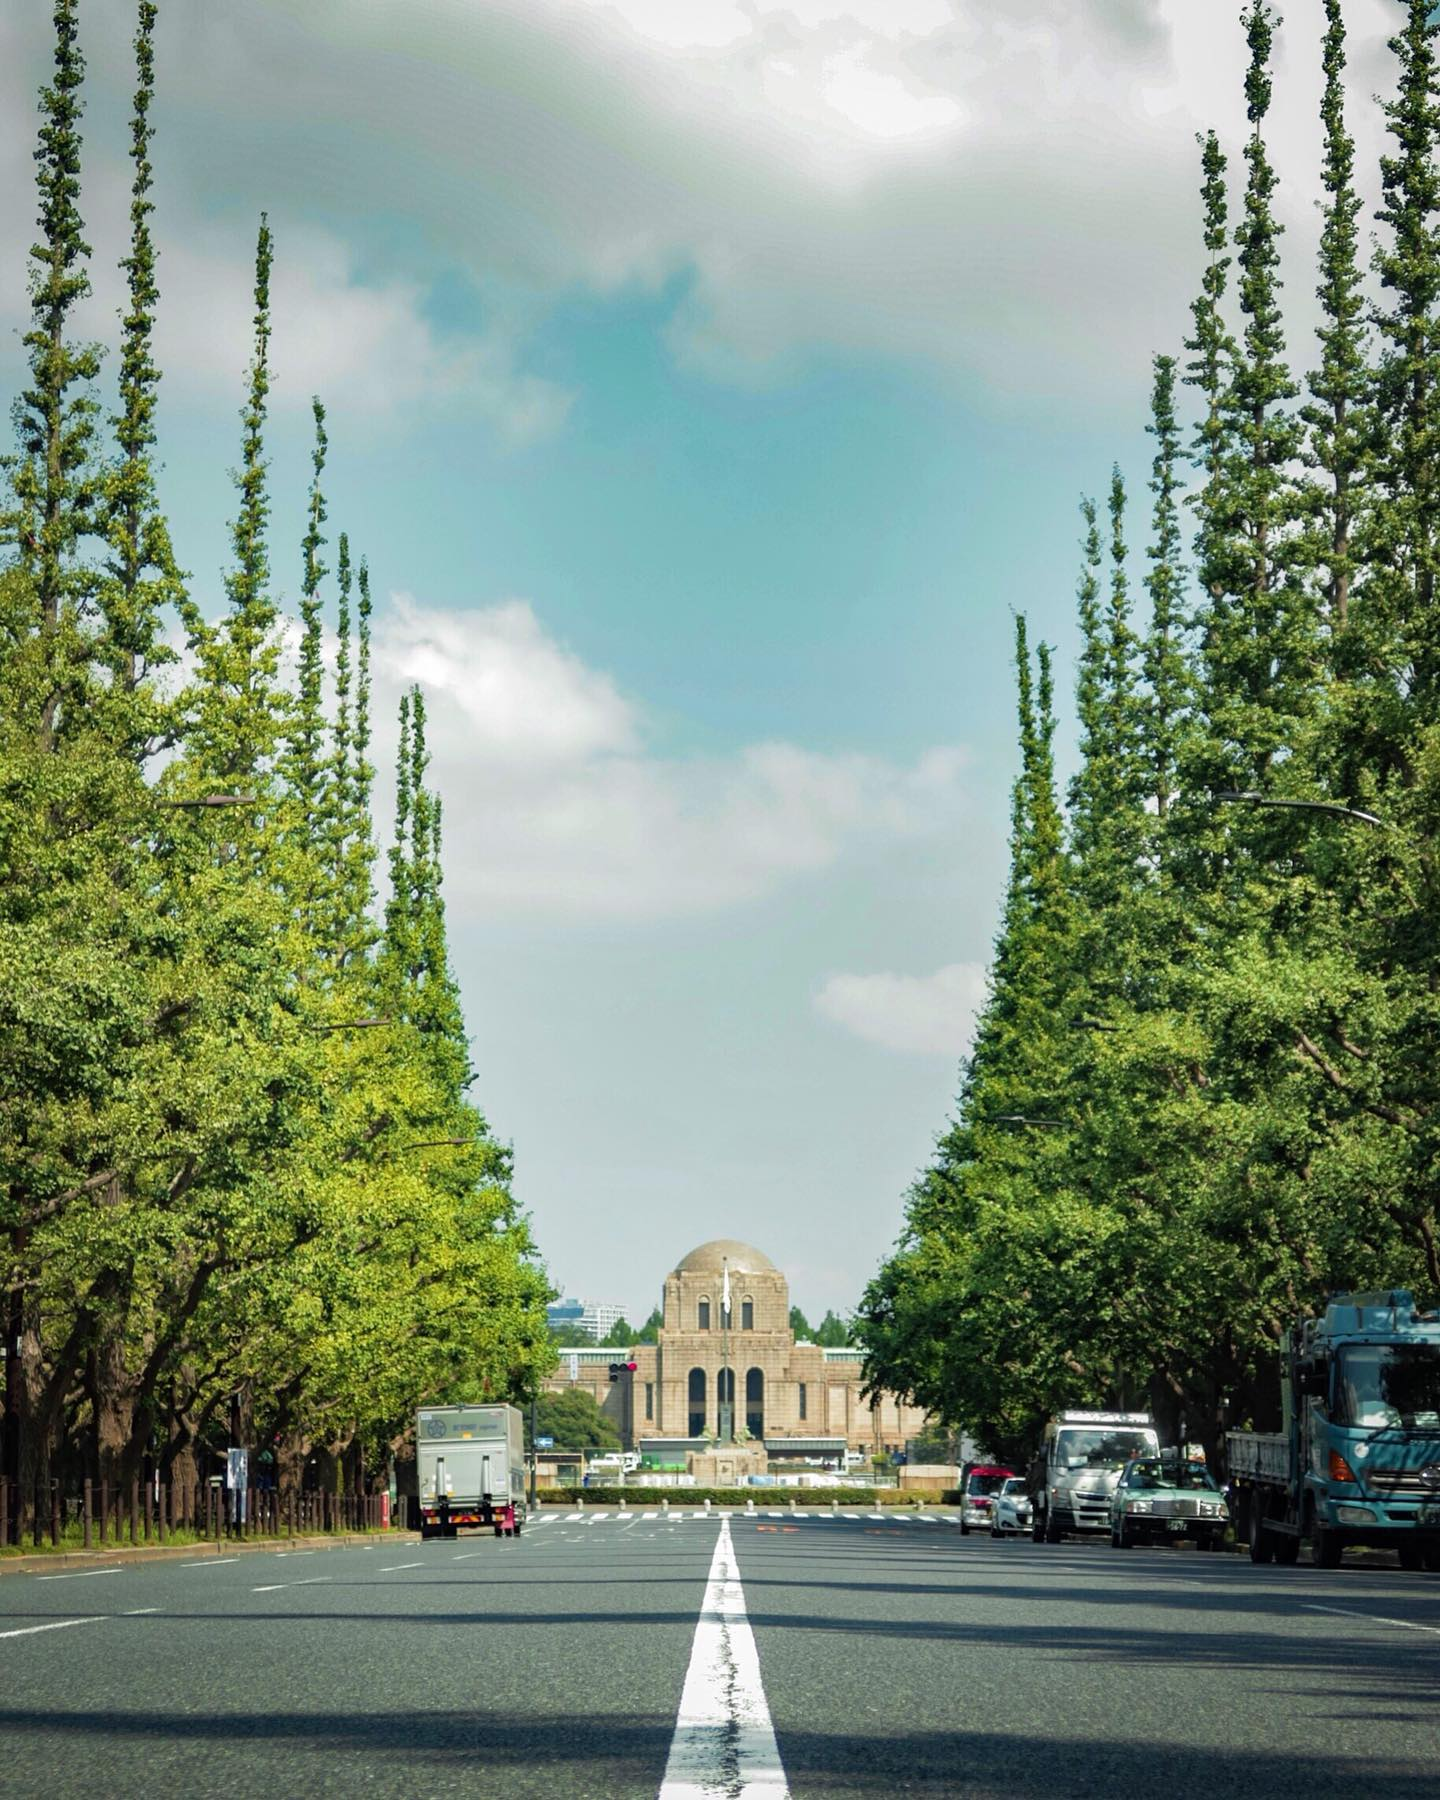 _ Here's this week's update from AOI Global at Ichonamiki, Gaien-mae and Tokyo!  The ginkgo trees you see here turns bright yellow in Autumn. People enjoy the spectacular view of such seasonal beauty in Japan.